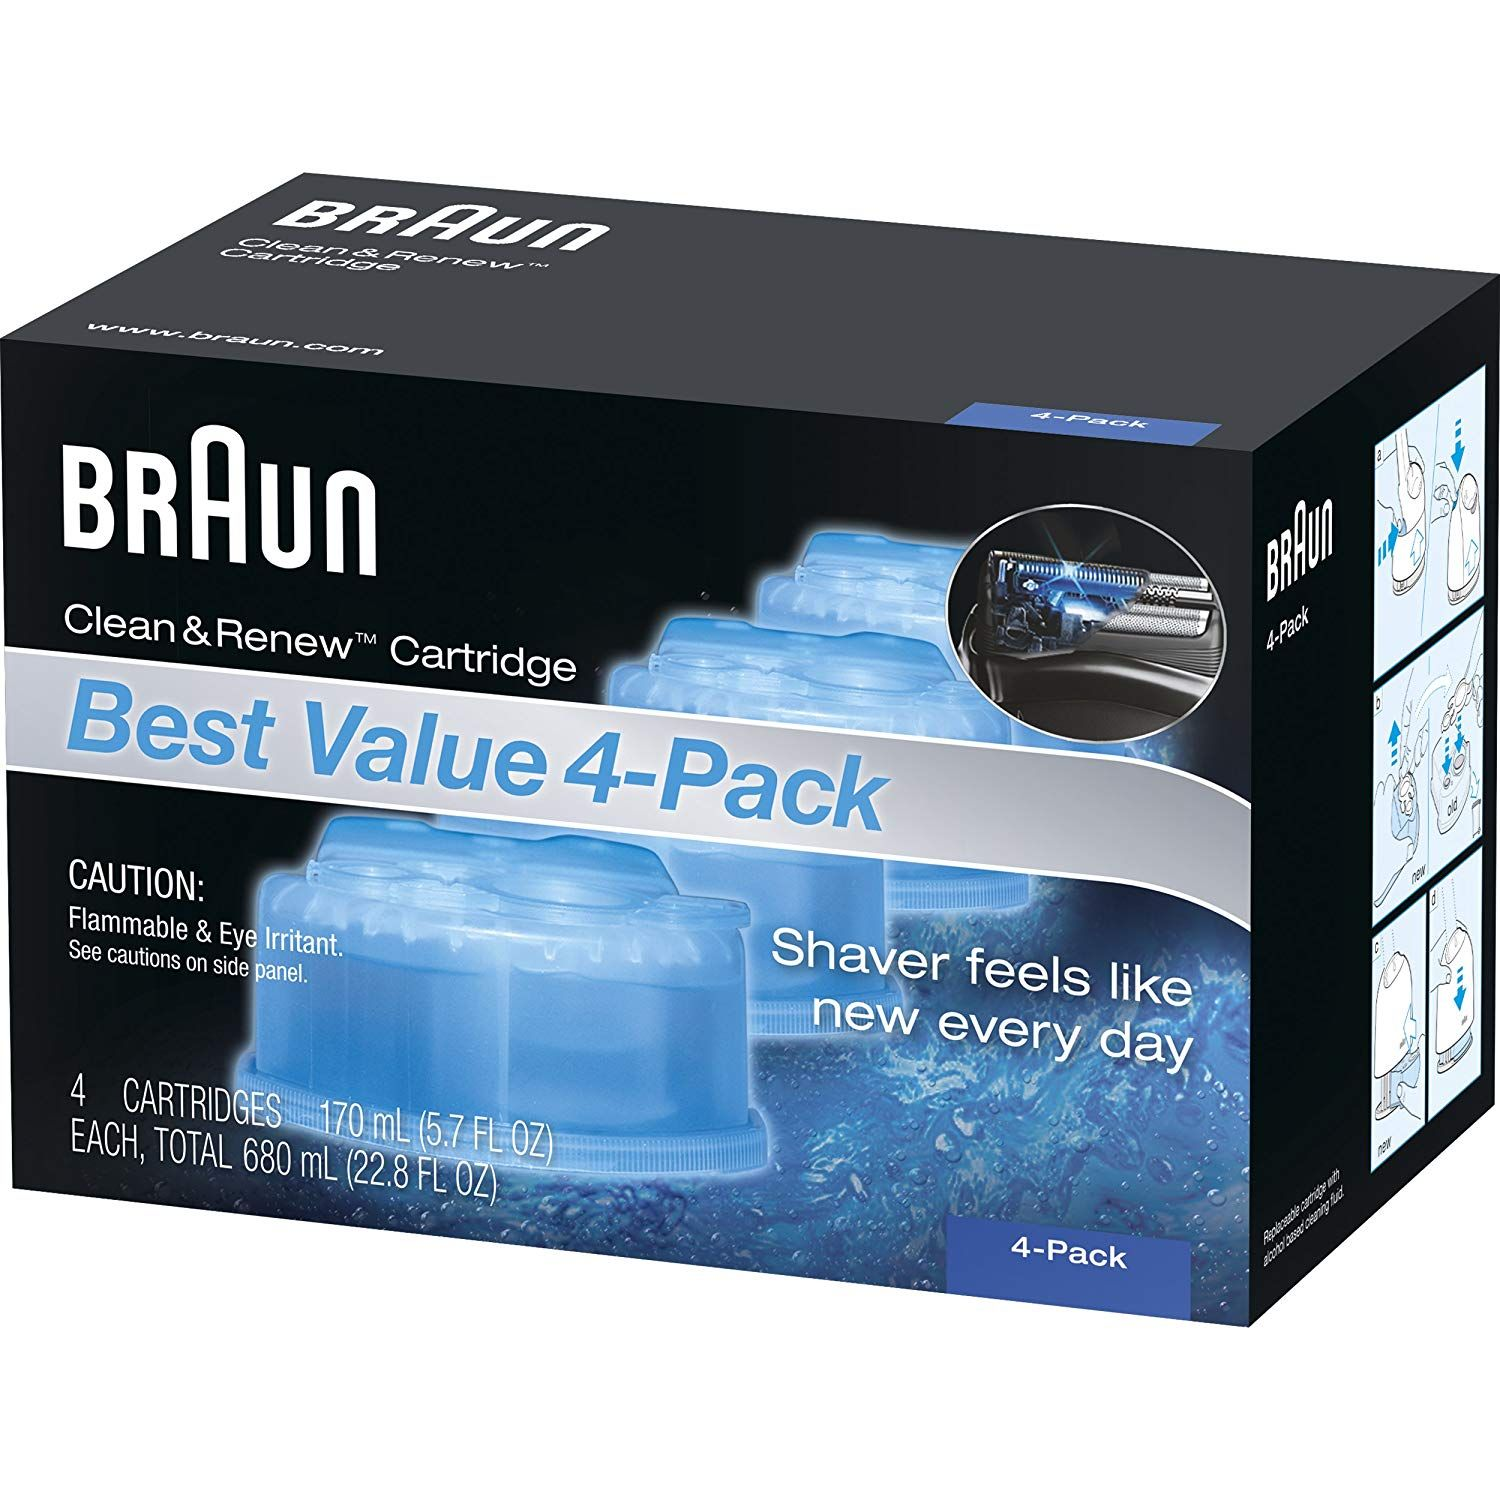 Amazon Com Braun Clean Renew Refill Cartridges Ccr 4 Count Packaging May Vary Beauty Braun Clean And Renew Cartridge Refilling Cleaning